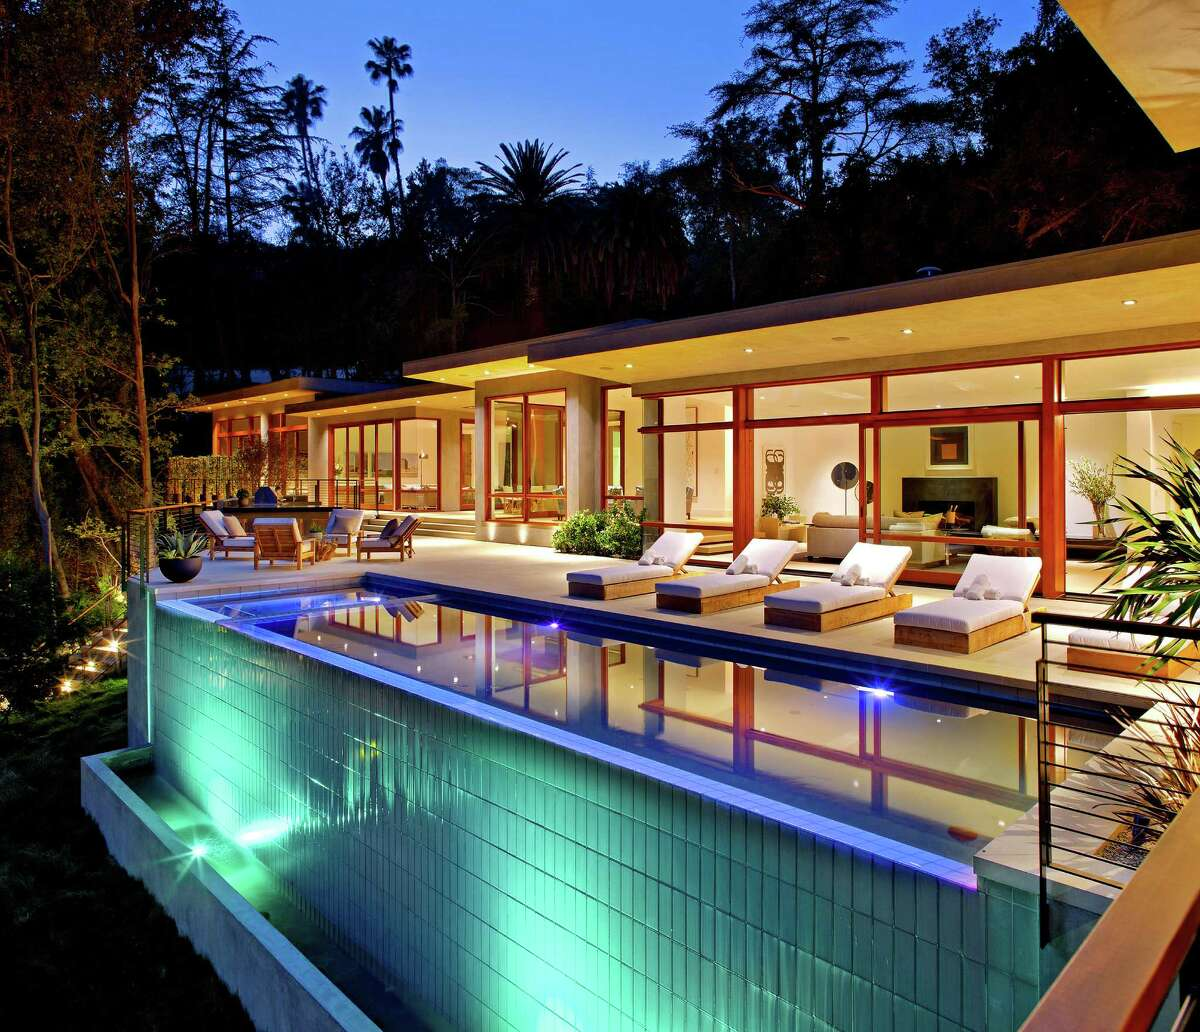 Ricky Martin paid $13.5 million for a seven-bedroom home on three quarters of an acre in Beverly Crest. Originally designed by architect Gregory Ain for his psychiatrist, Fred Feldman, the Midcentury Modern-style home was recently renovated and expanded to 11,300 square feet of living space Among details of note are walls of wood-paneled windows, an oversized master suite and an infinity-edge swimming pool. (Bill Singleton)